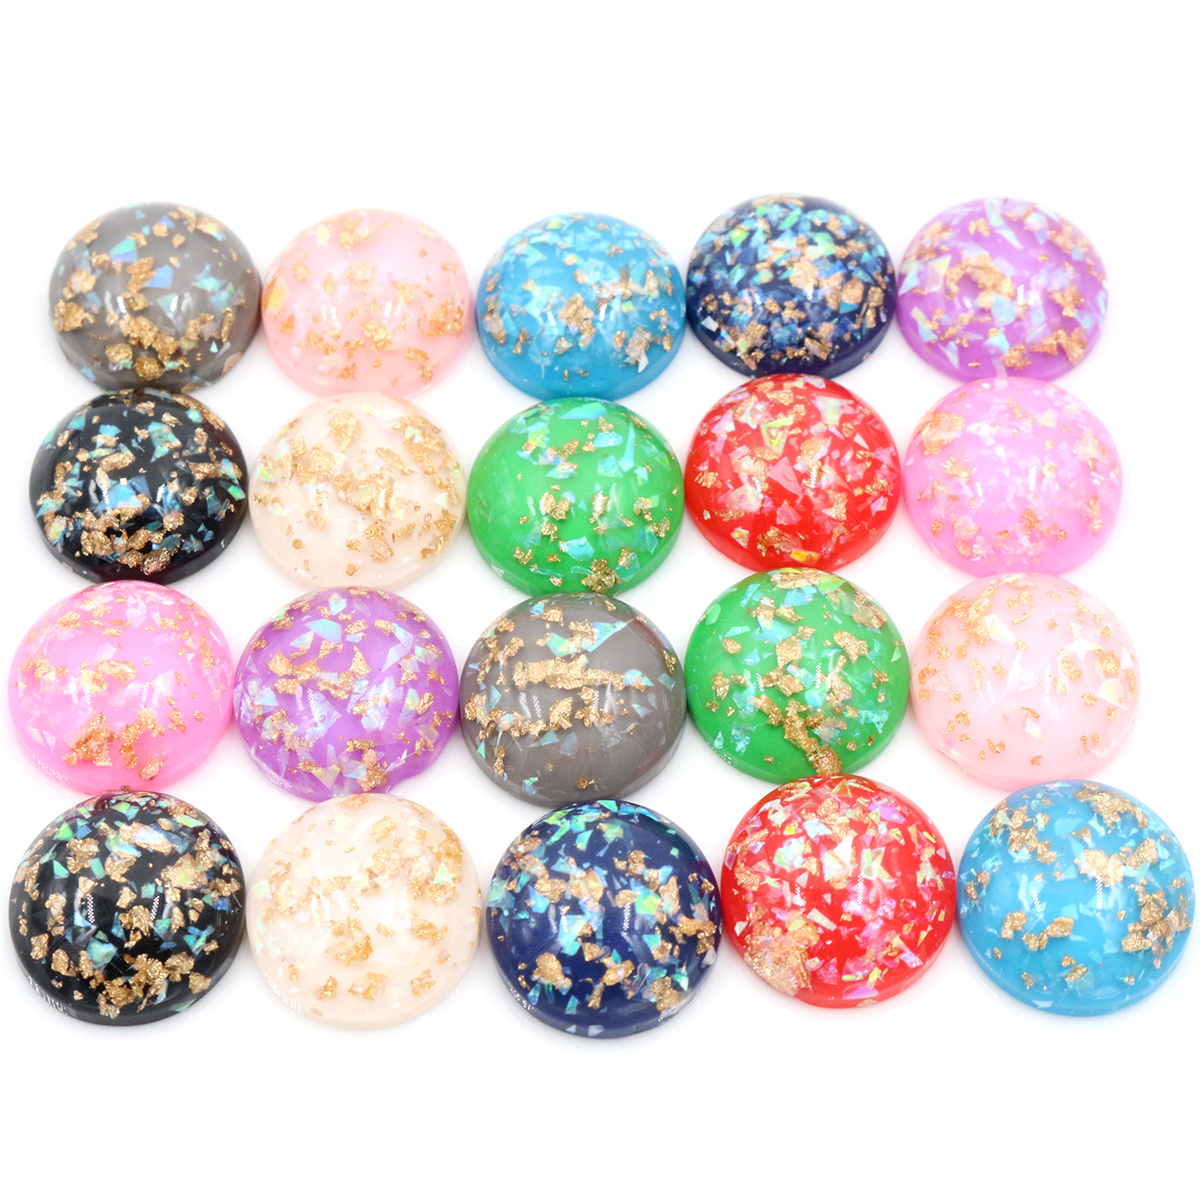 20mm 10pcs/Lot New Fashion Mix Color Built-in Metal Foil Flat Back Resin Cabochons Cameo